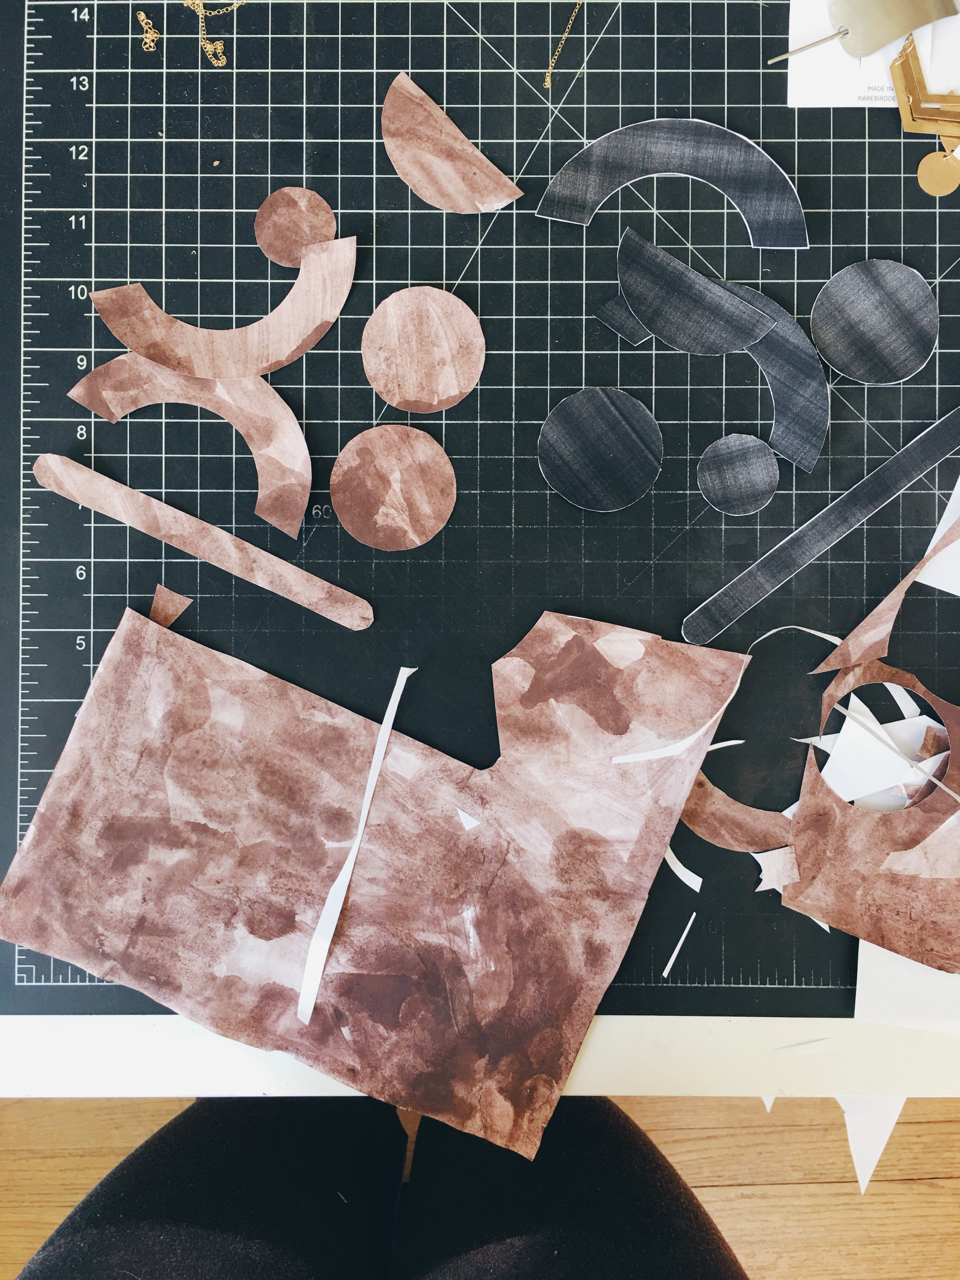 Creative Experiments: Compositions With Cut Paper Collage 2.jpg